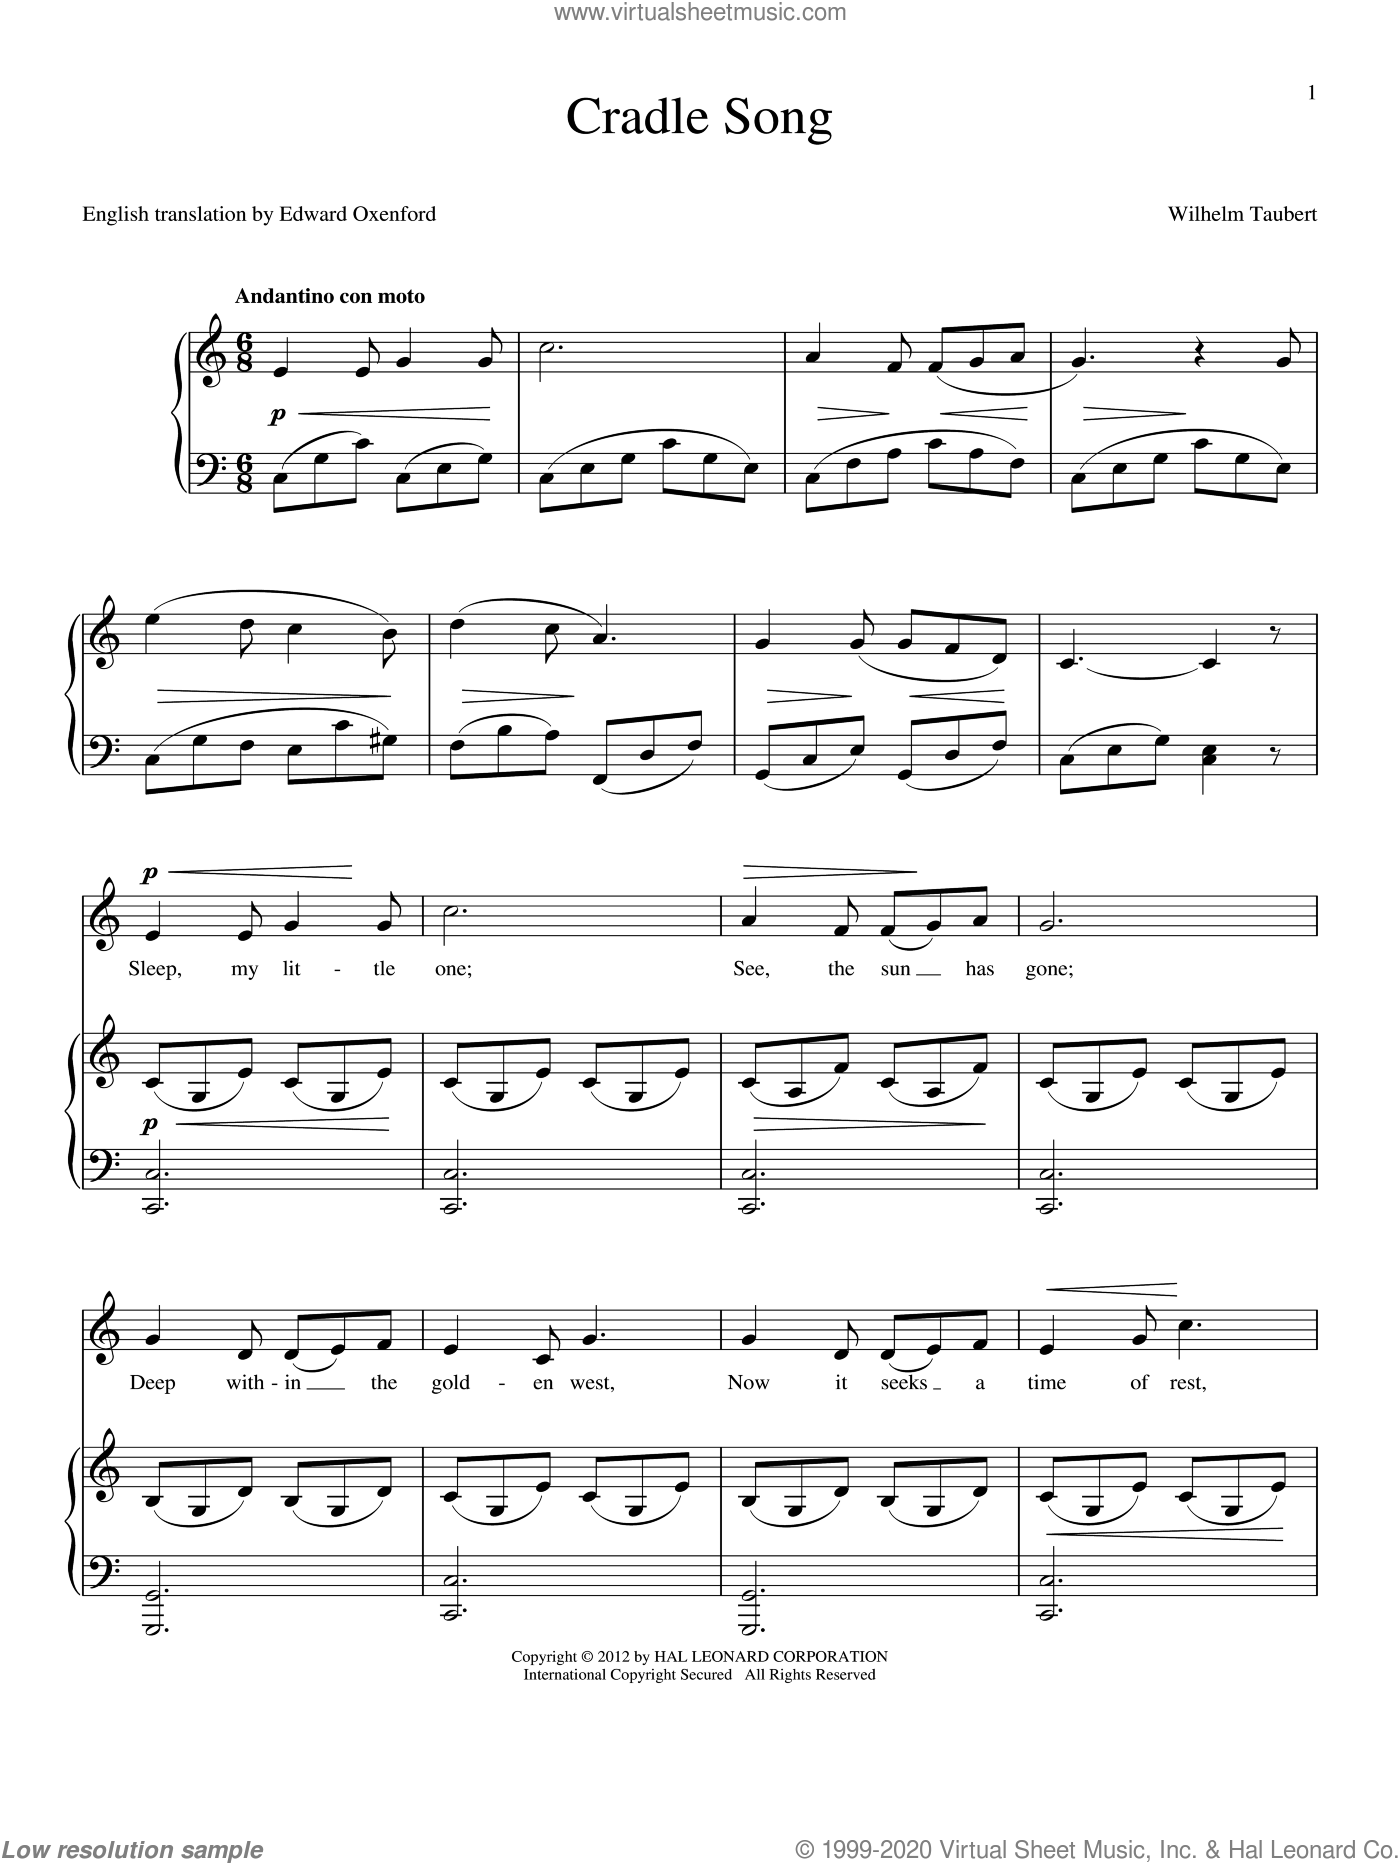 Cradle Song sheet music for voice and piano by Edward Oxenford